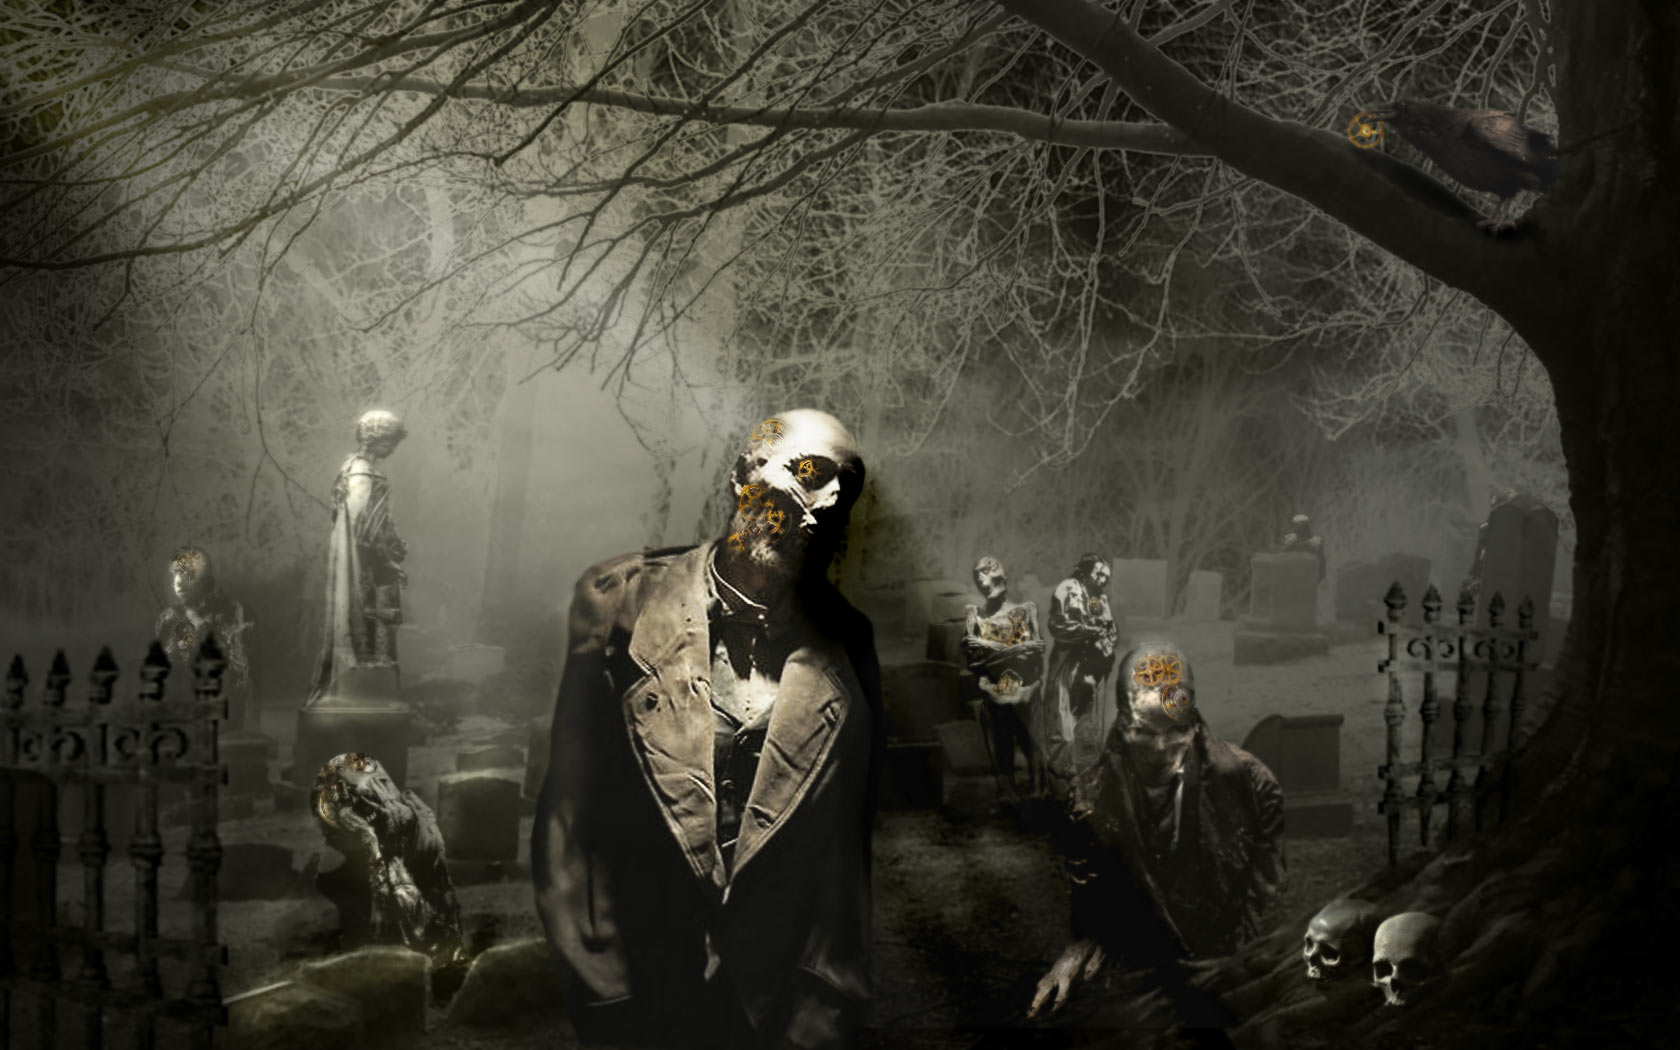 47+] Free Graveyard Wallpaper on WallpaperSafari